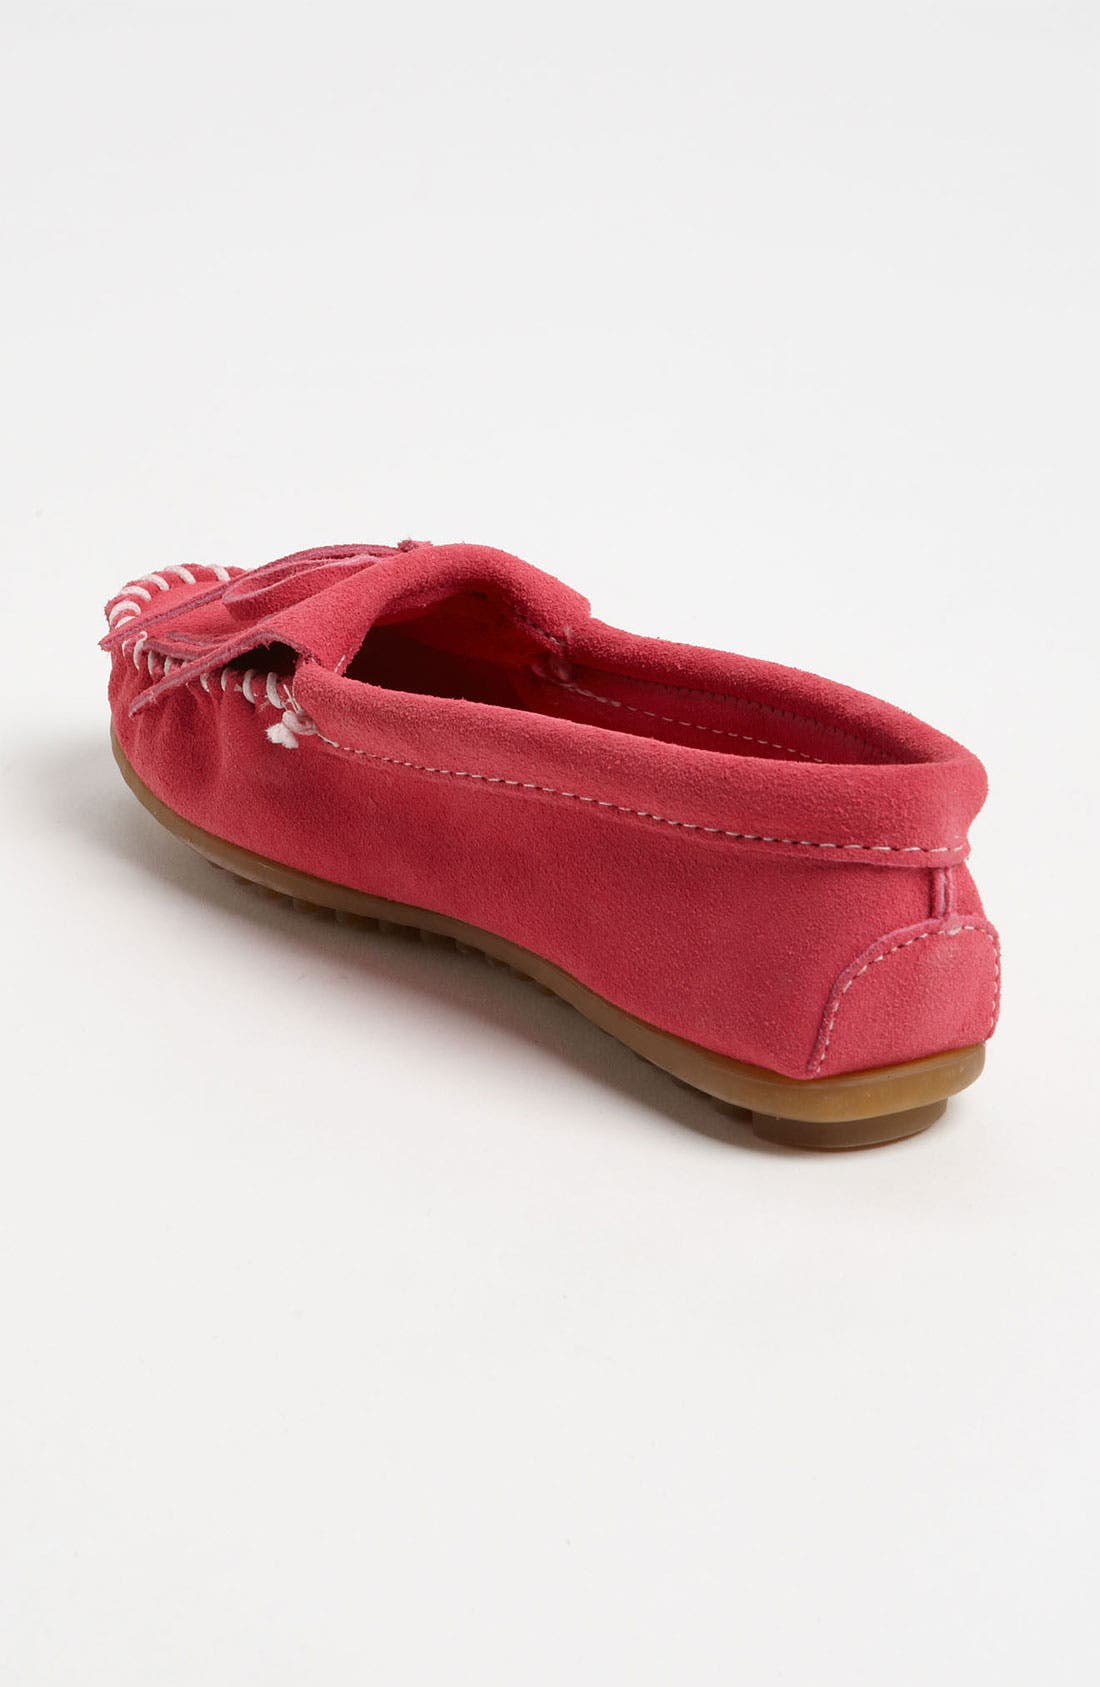 'Kilty' Suede Moccasin,                             Alternate thumbnail 2, color,                             Pink